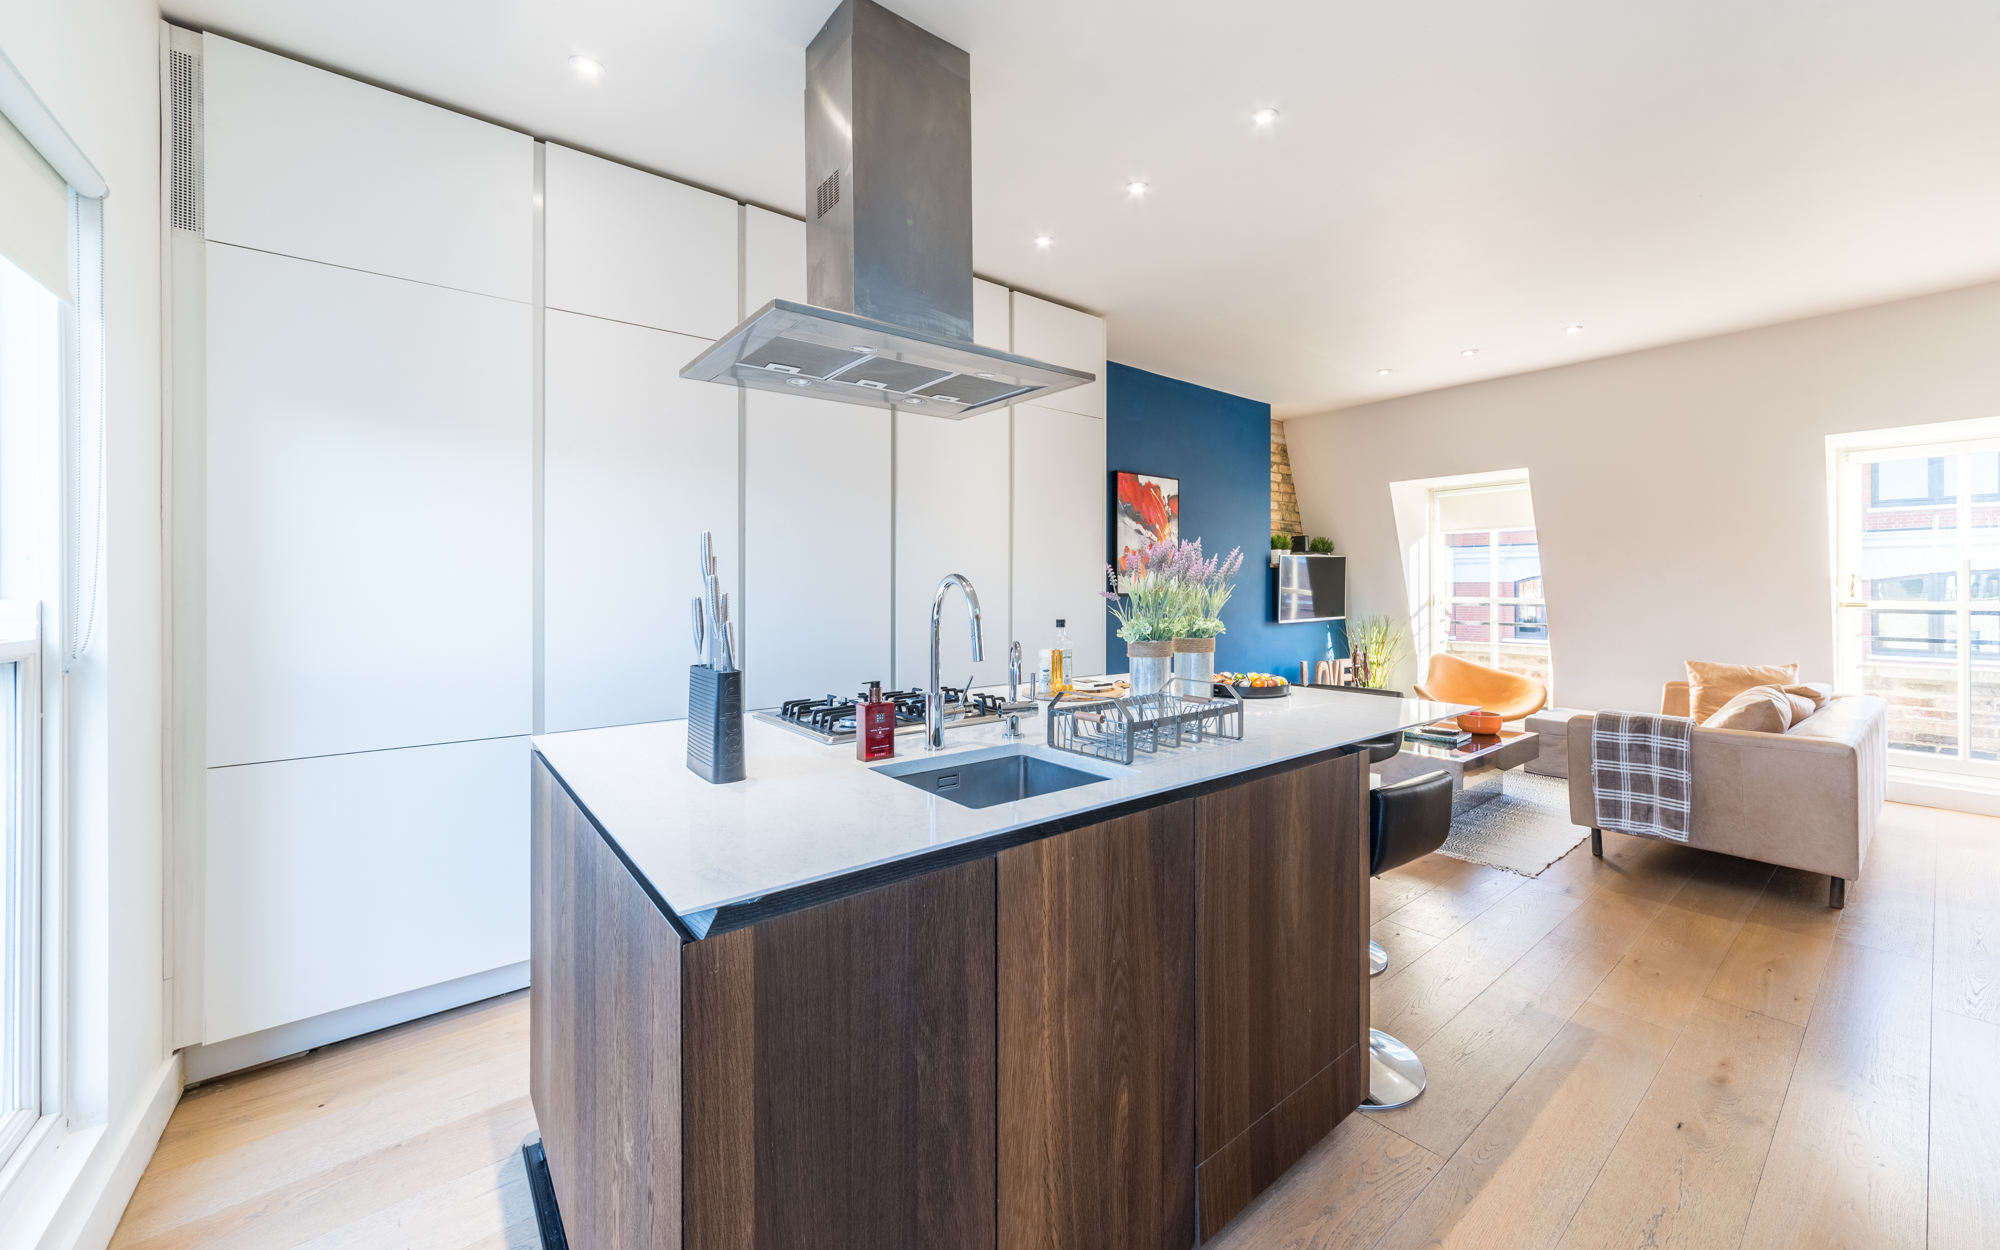 Lovelydays luxury service apartment rental - London - Fitzrovia - Foley Street II - Lovelysuite - 2 bedrooms - 2 bathrooms - Luxury kitchen - d7d6e216a94f - Lovelydays